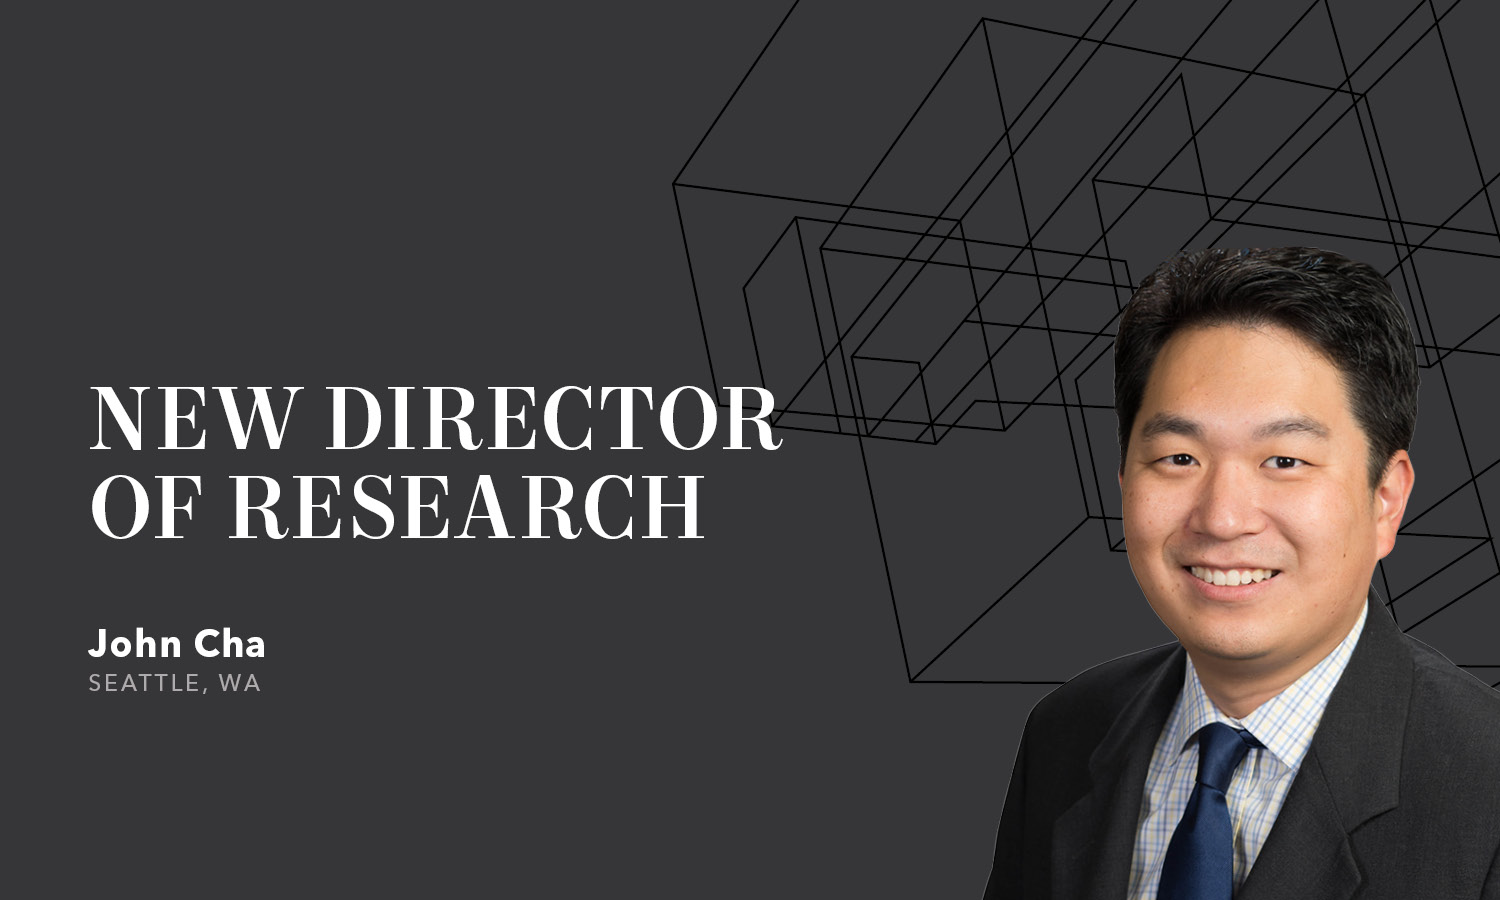 John Cha hired as new research director for kidder mathews